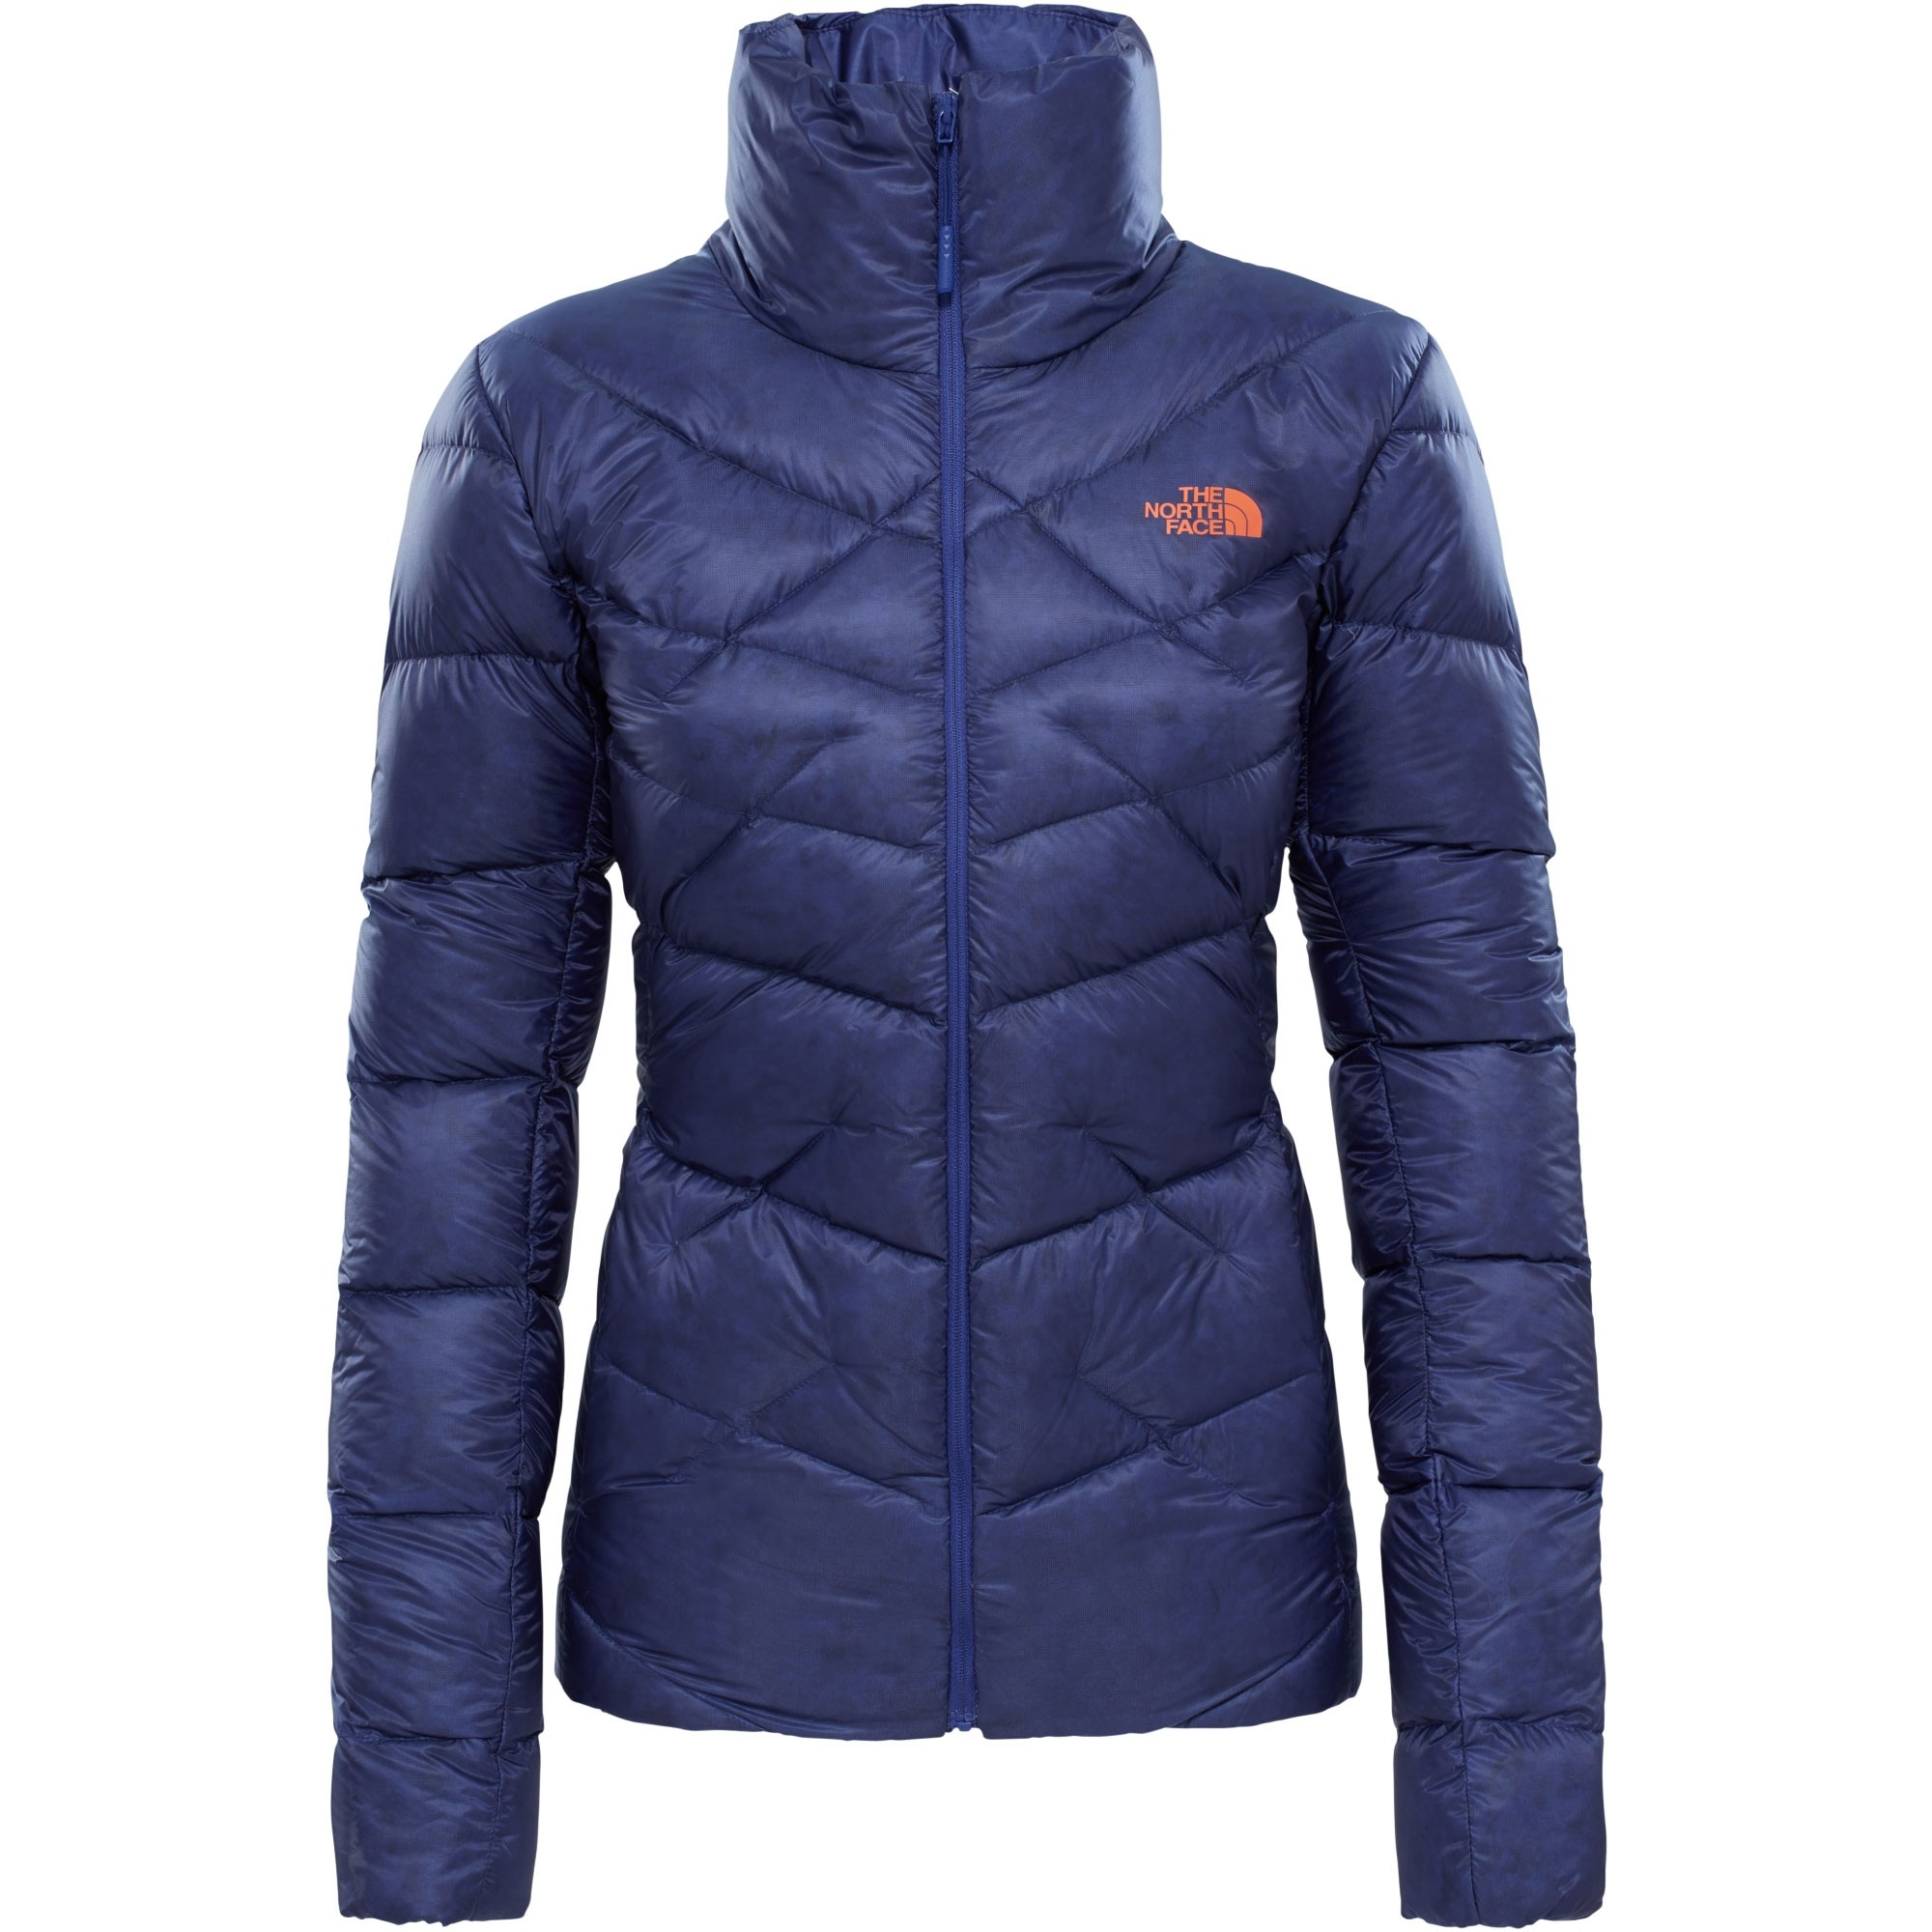 The-North-Face-Womens-Supercinco-Down-Jacket-Bright-Navy